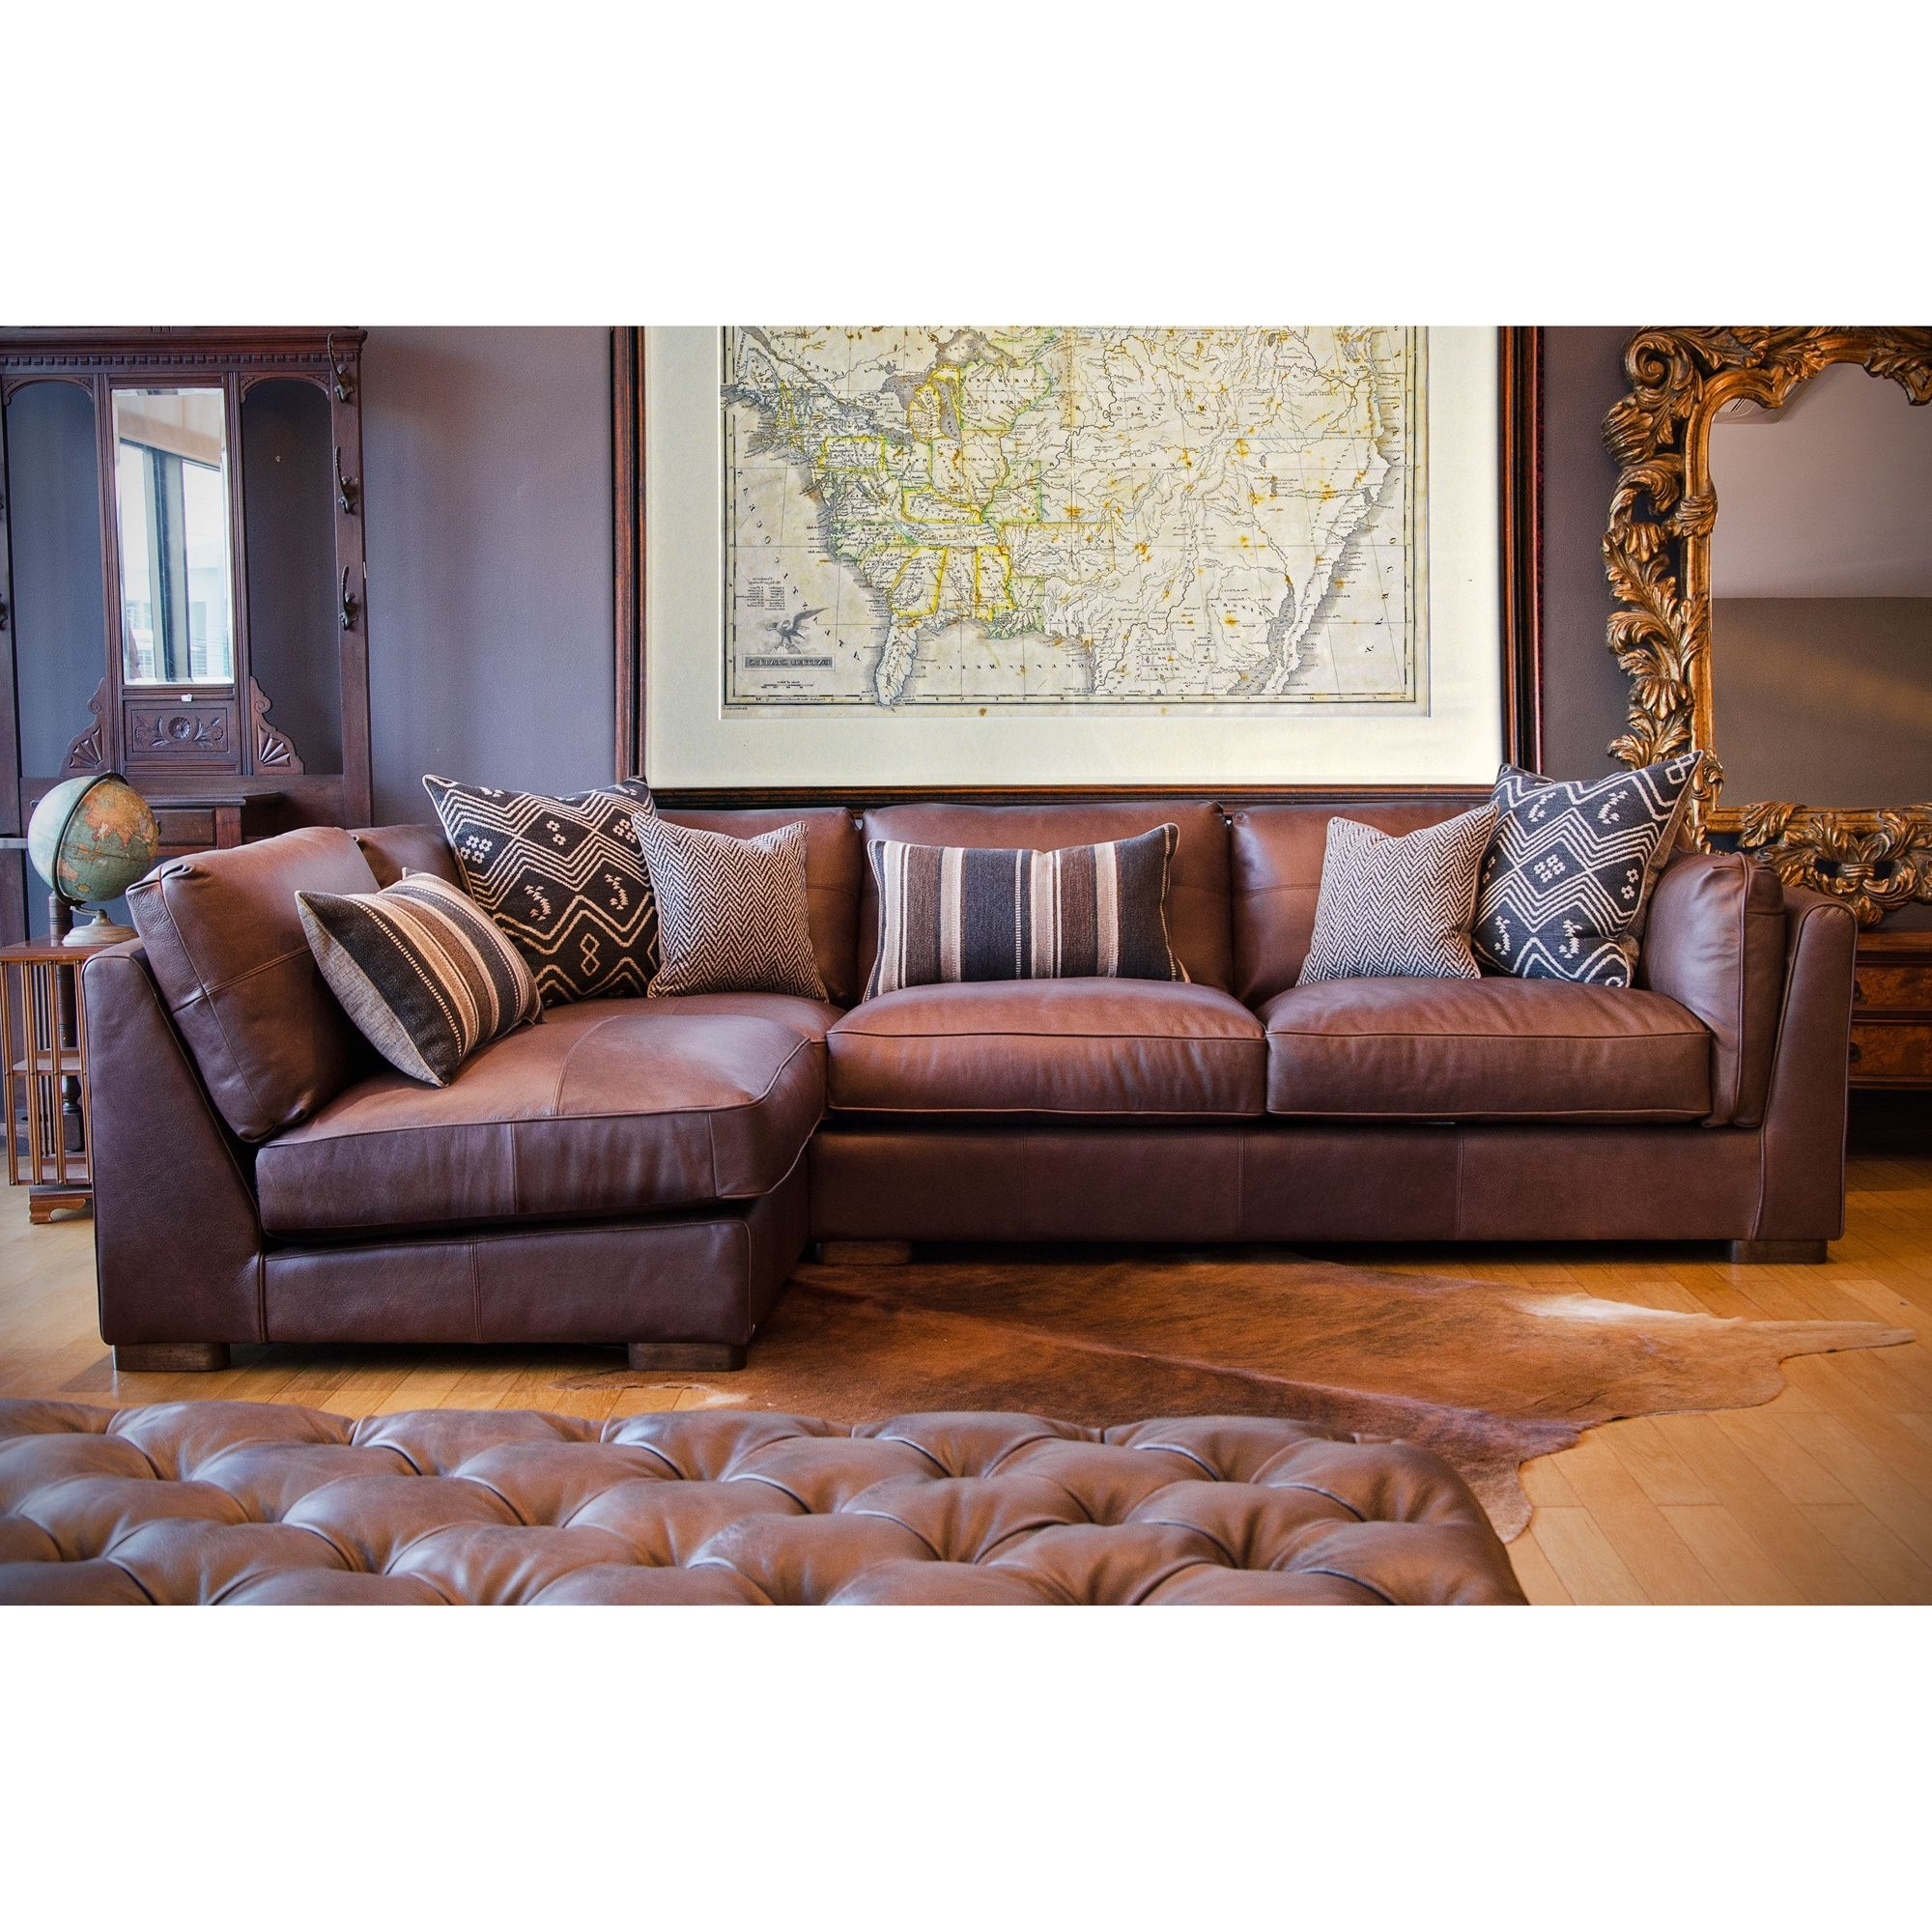 Trendy Enrich Your Home Decor With The Understated Elegance Of This Regarding Phoenix Arizona Sectional Sofas (View 19 of 20)